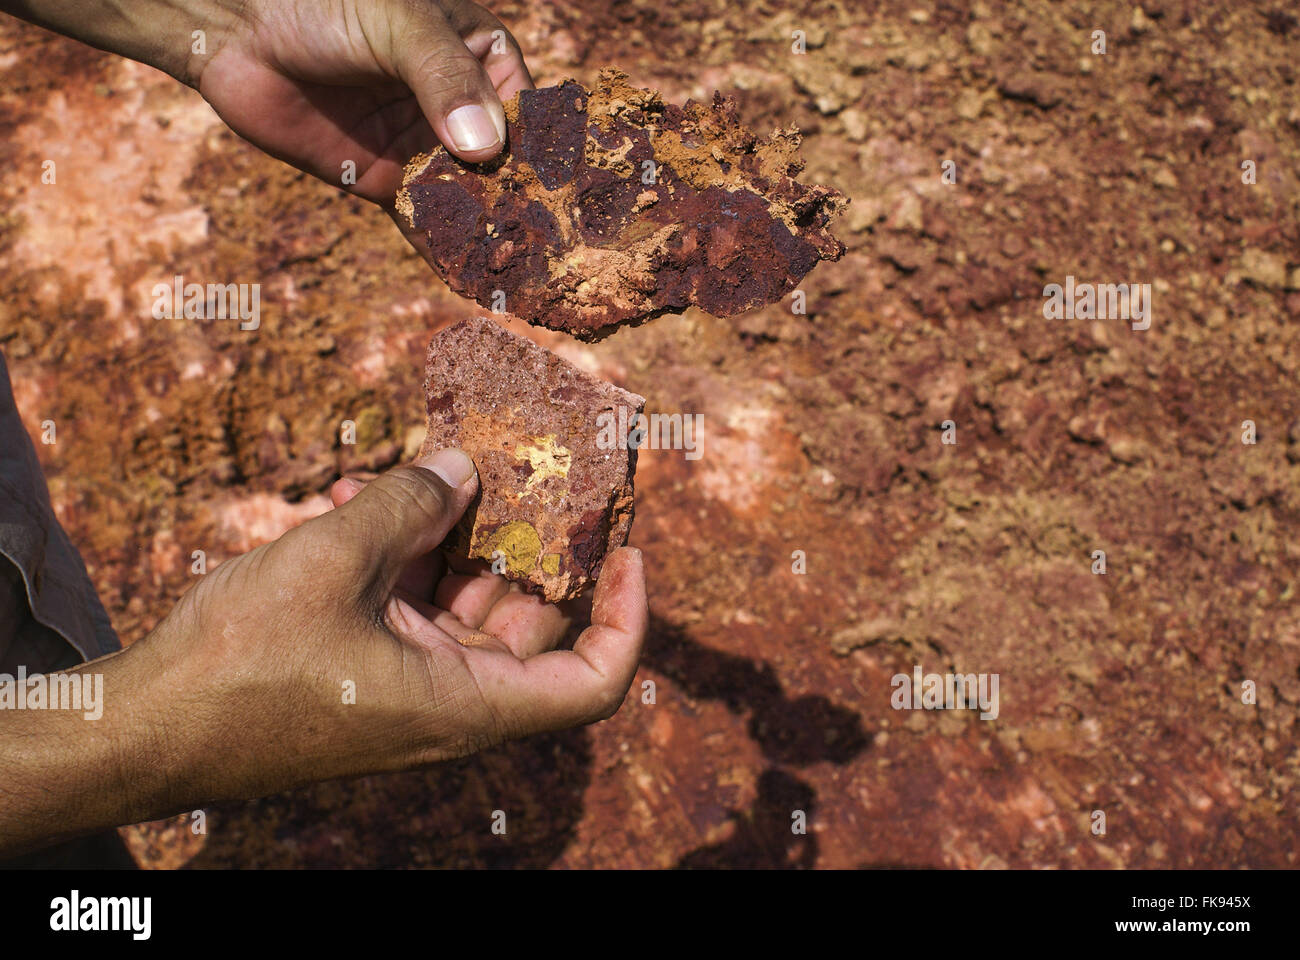 Comparison between that and bauxite or not - bauxite and the more reddish stone in left hand - Stock Image